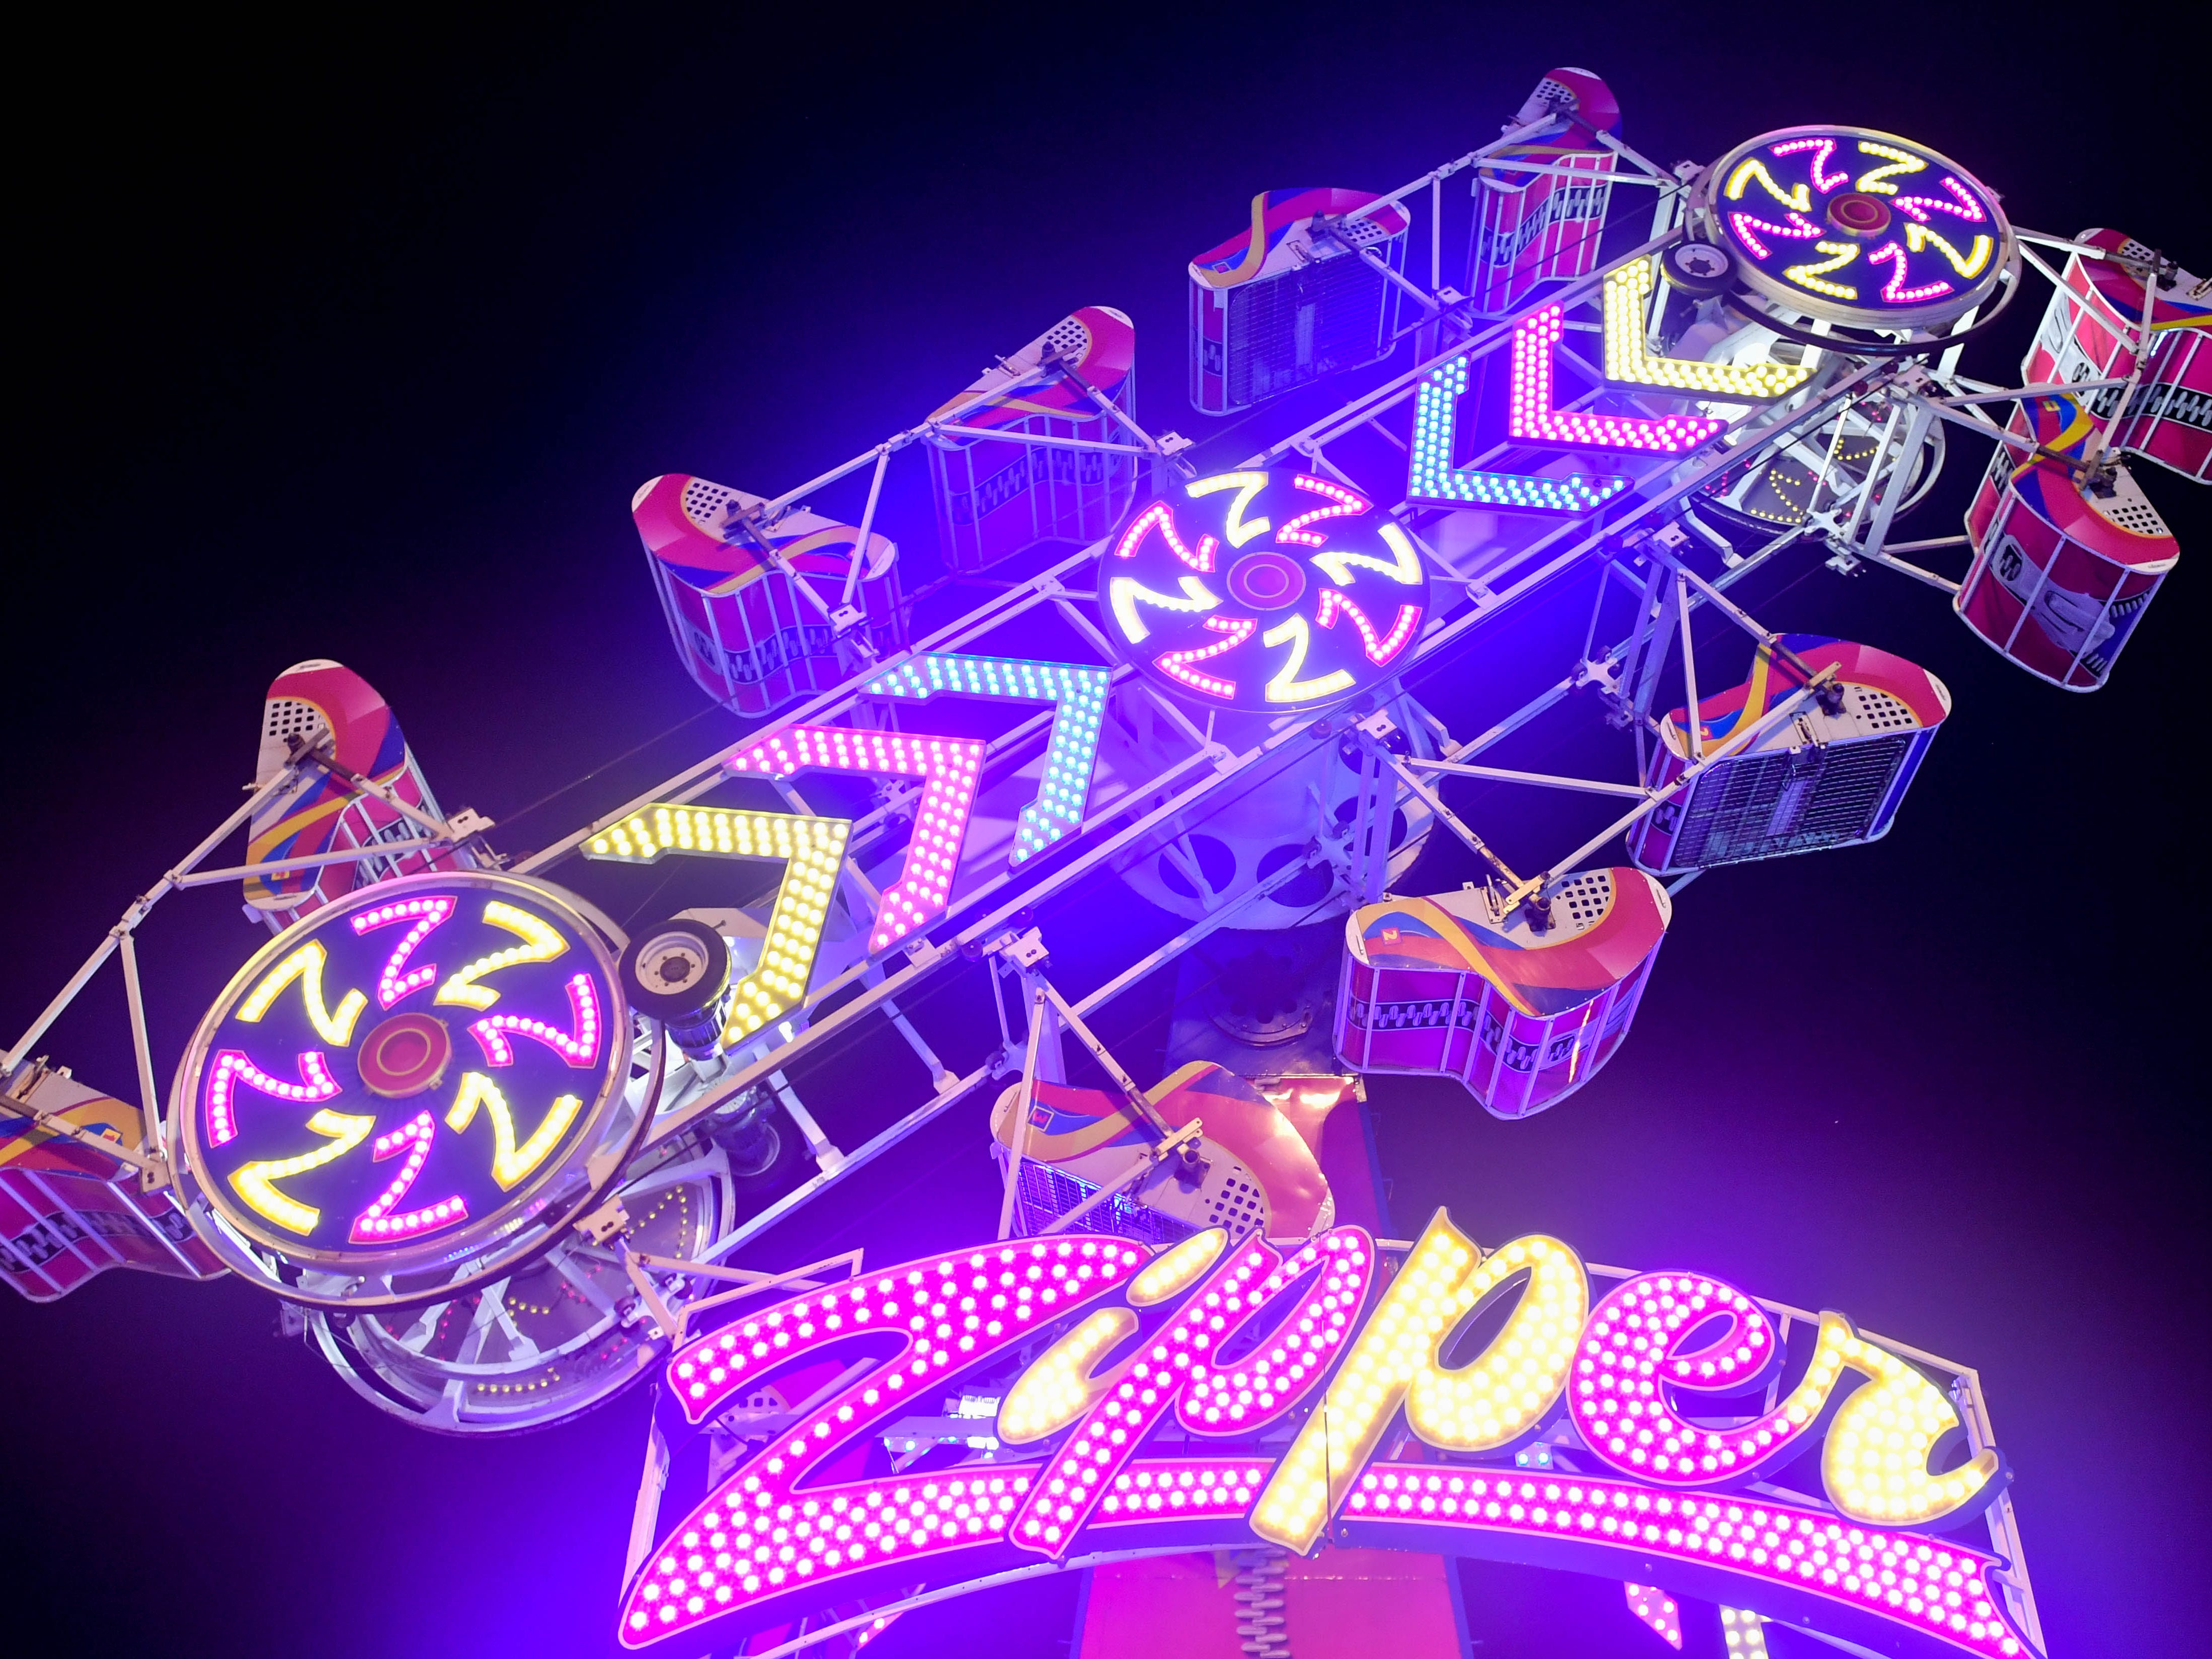 The Zipper is one of the more popular rides at the York Fair. It straps two people into a rolling cage that spins as the ride rotates, September 11, 2018.